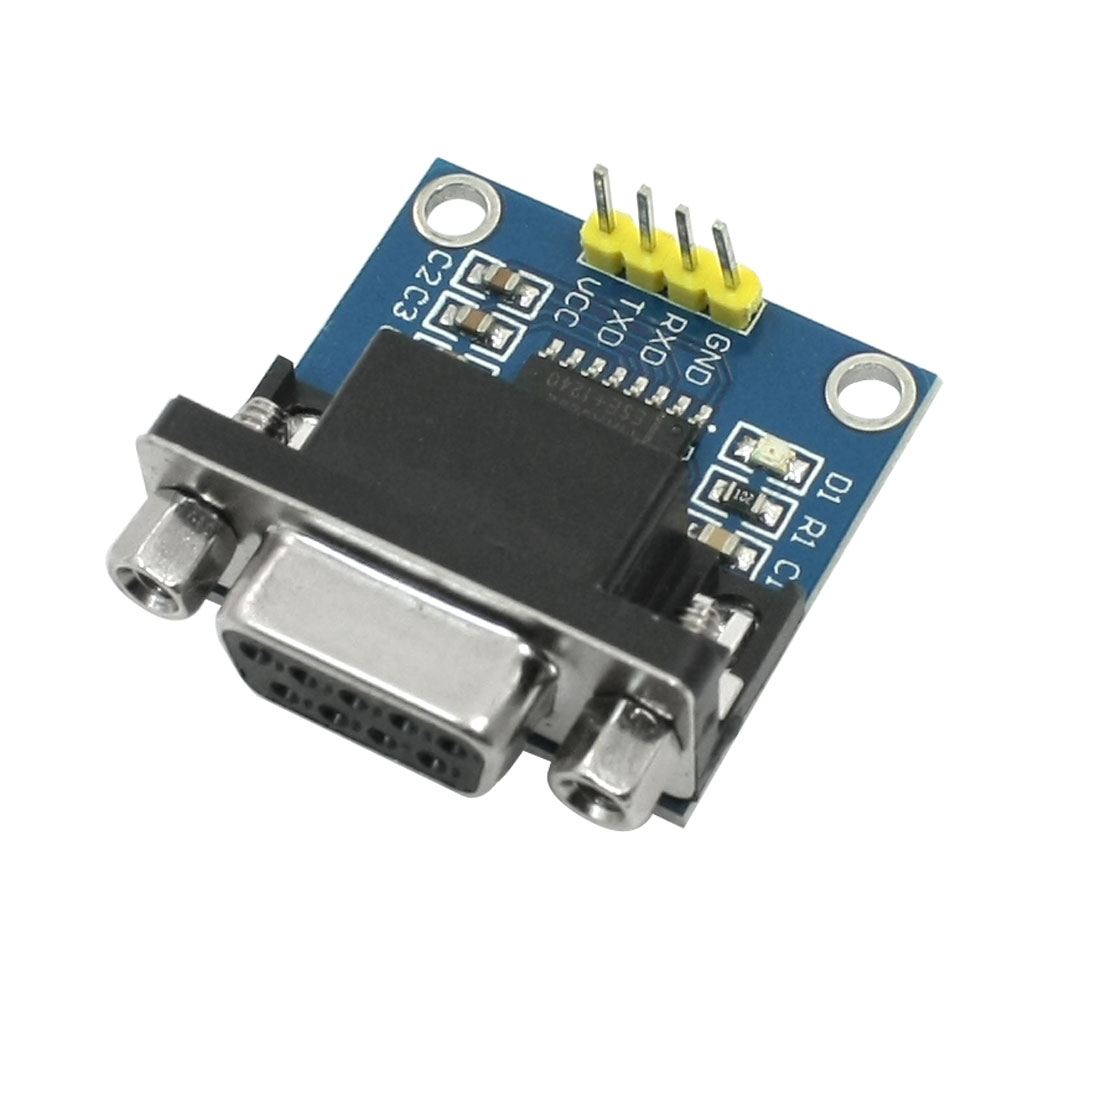 RS232 Serial Port to TTL Converter Communication Module for MCU